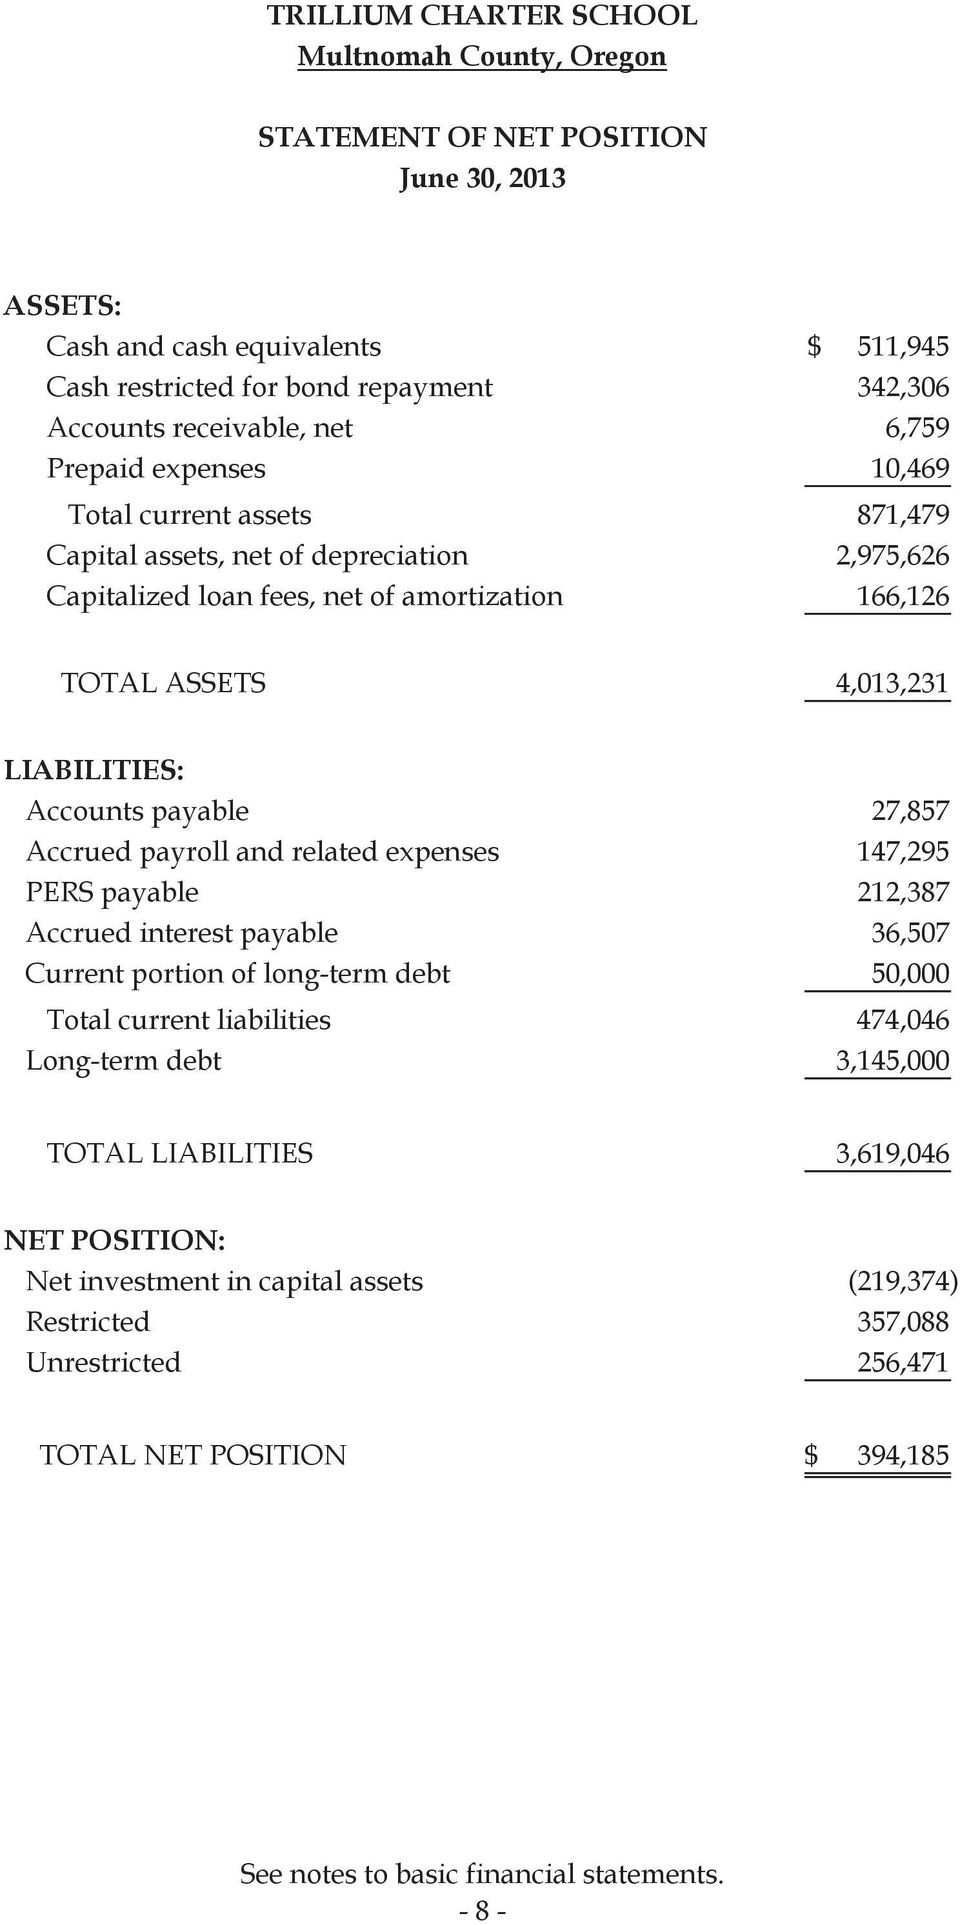 27,857 Accrued payroll and related expenses 147,295 PERS payable 212,387 Accrued interest payable 36,507 Current portion of long-term debt 50,000 Total current liabilities 474,046 Long-term debt